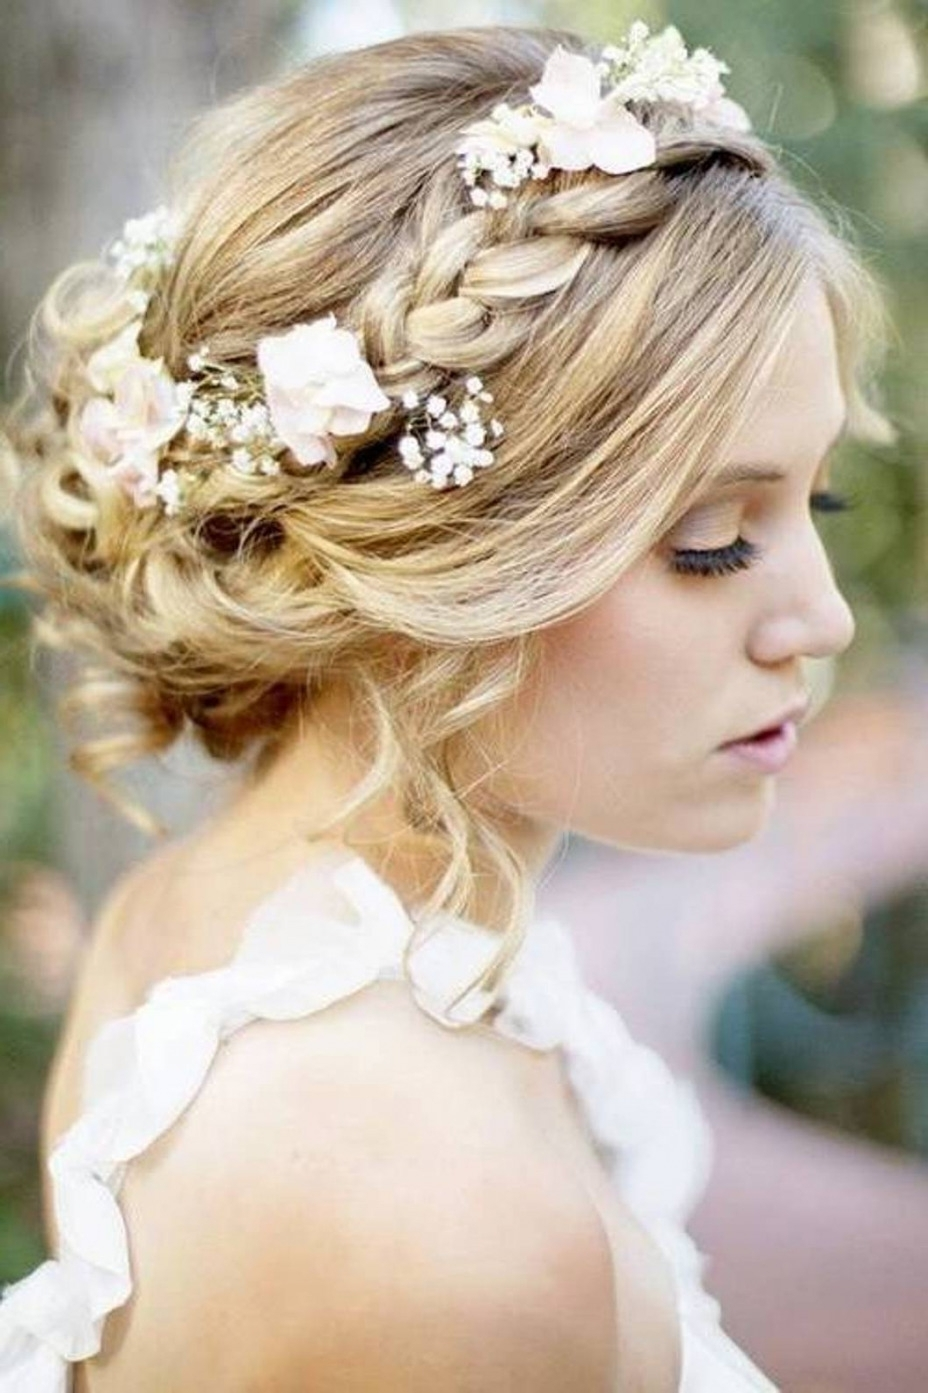 Latest Throughout Most Up To Date Wedding Hairstyles With Veil And Tiara (View 3 of 16)